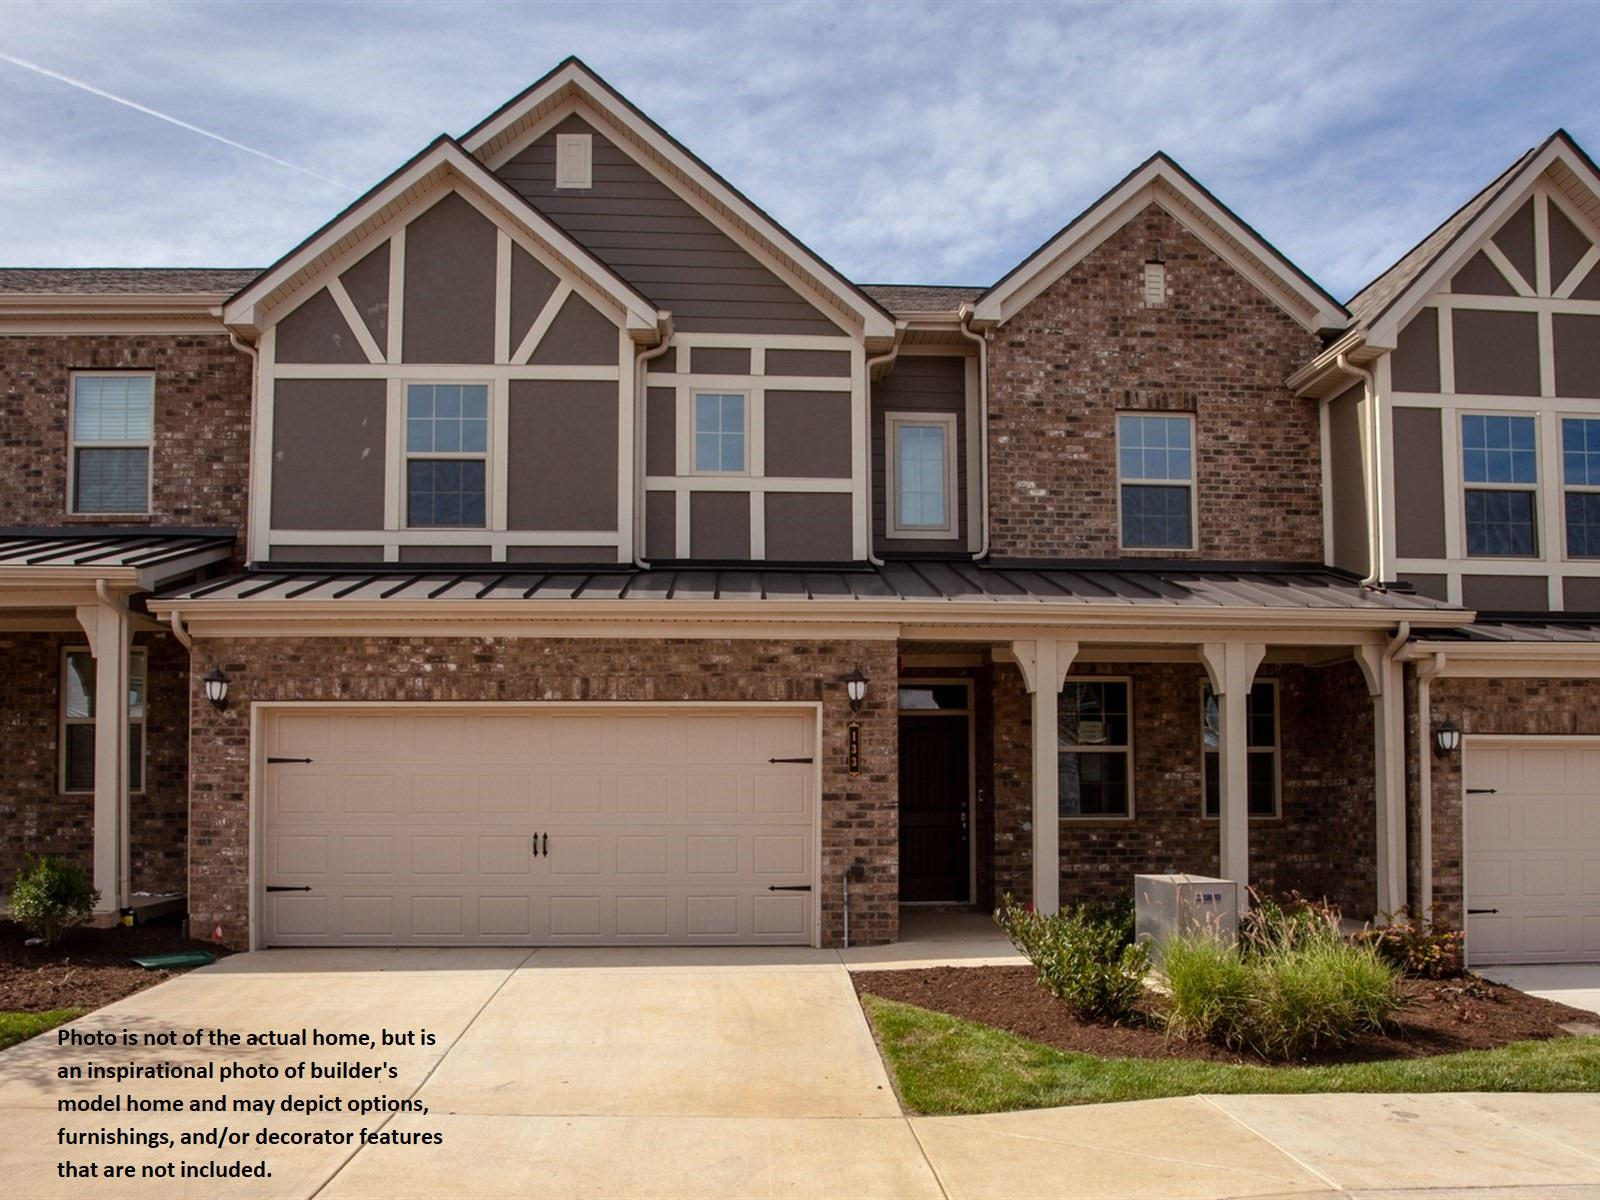 183 Cape Private Circle 37066 - One of Gallatin Homes for Sale